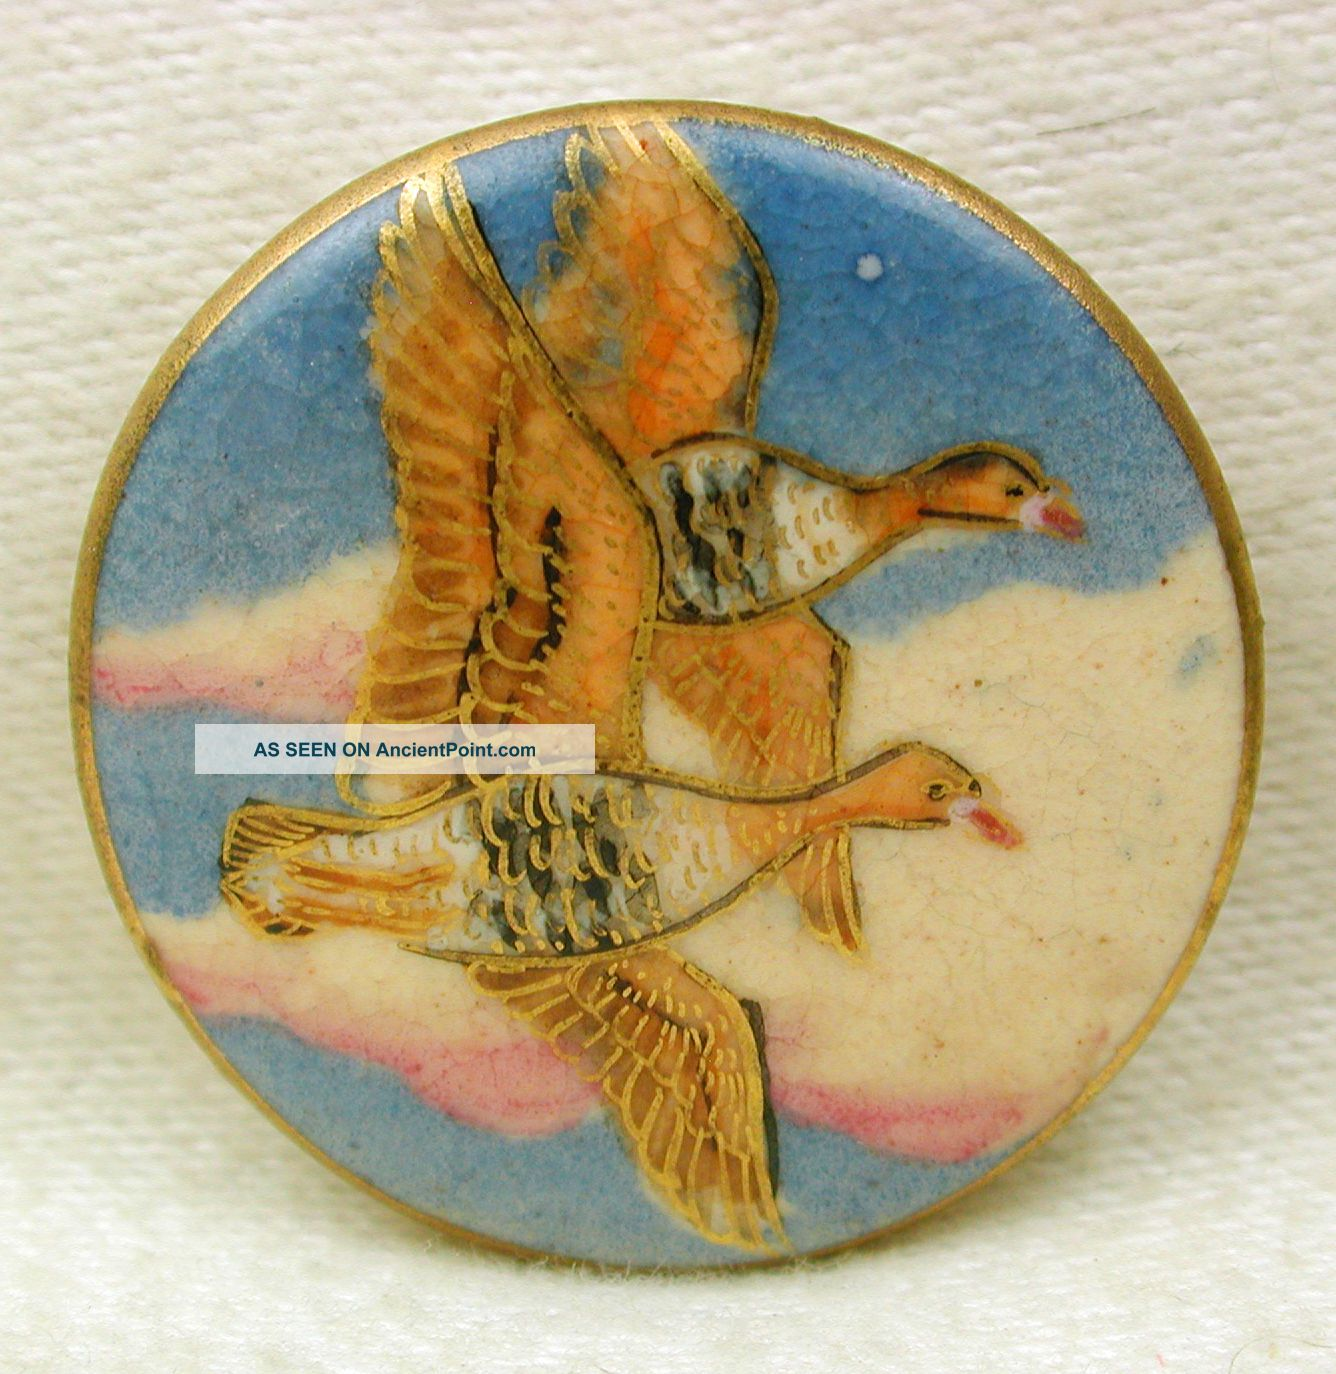 Vintage Satsuma Button Two Ducks In Flight W/ Gold Accents - 1 & 1/16 Buttons photo